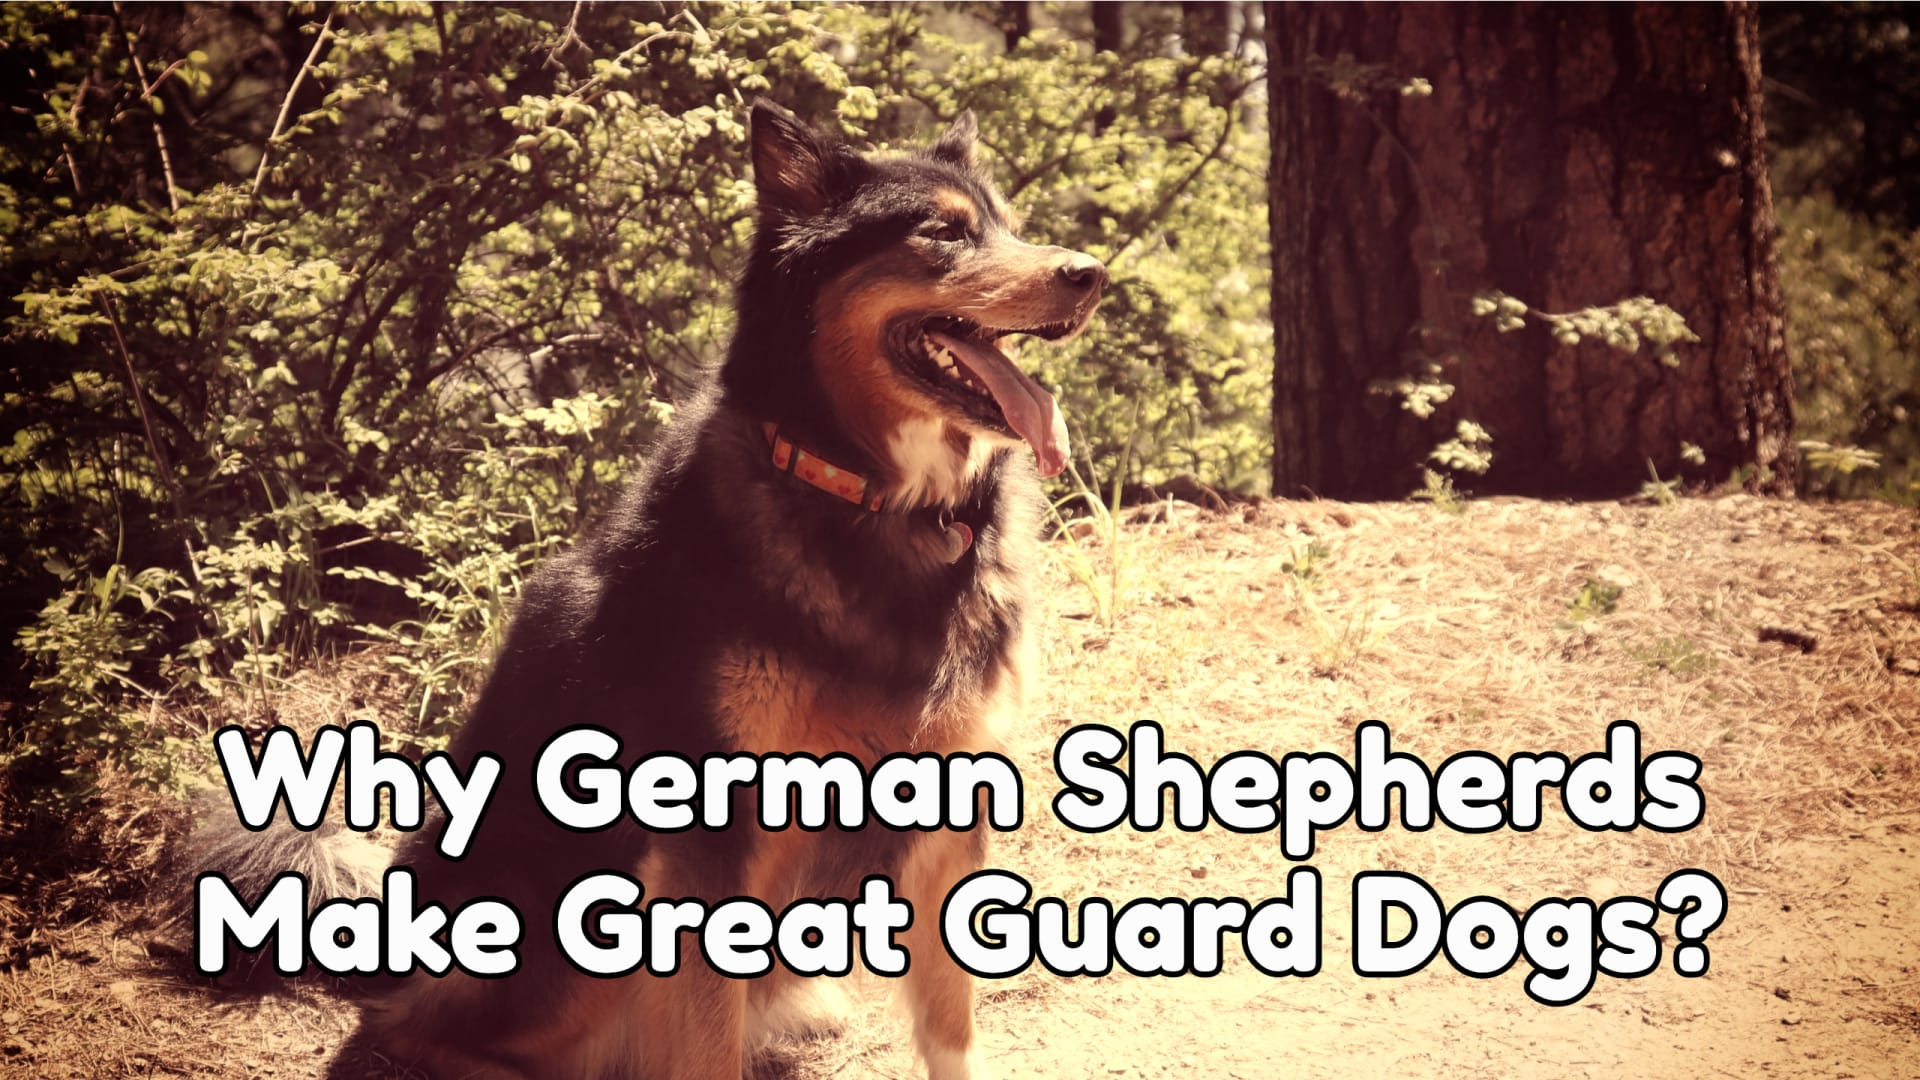 Why German Shepherds Make Great Guard Dogs